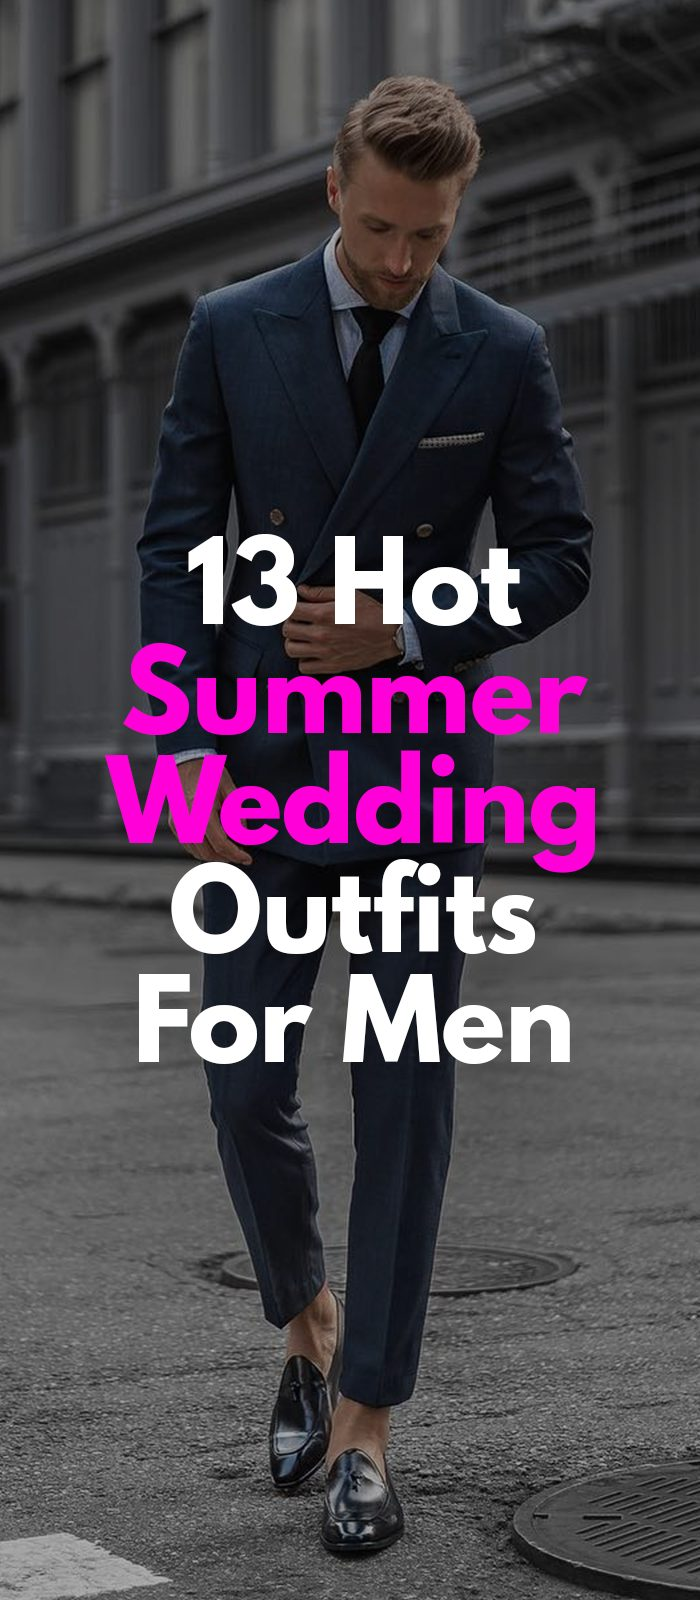 13 Hot Summer Wedding Outfits For Men!